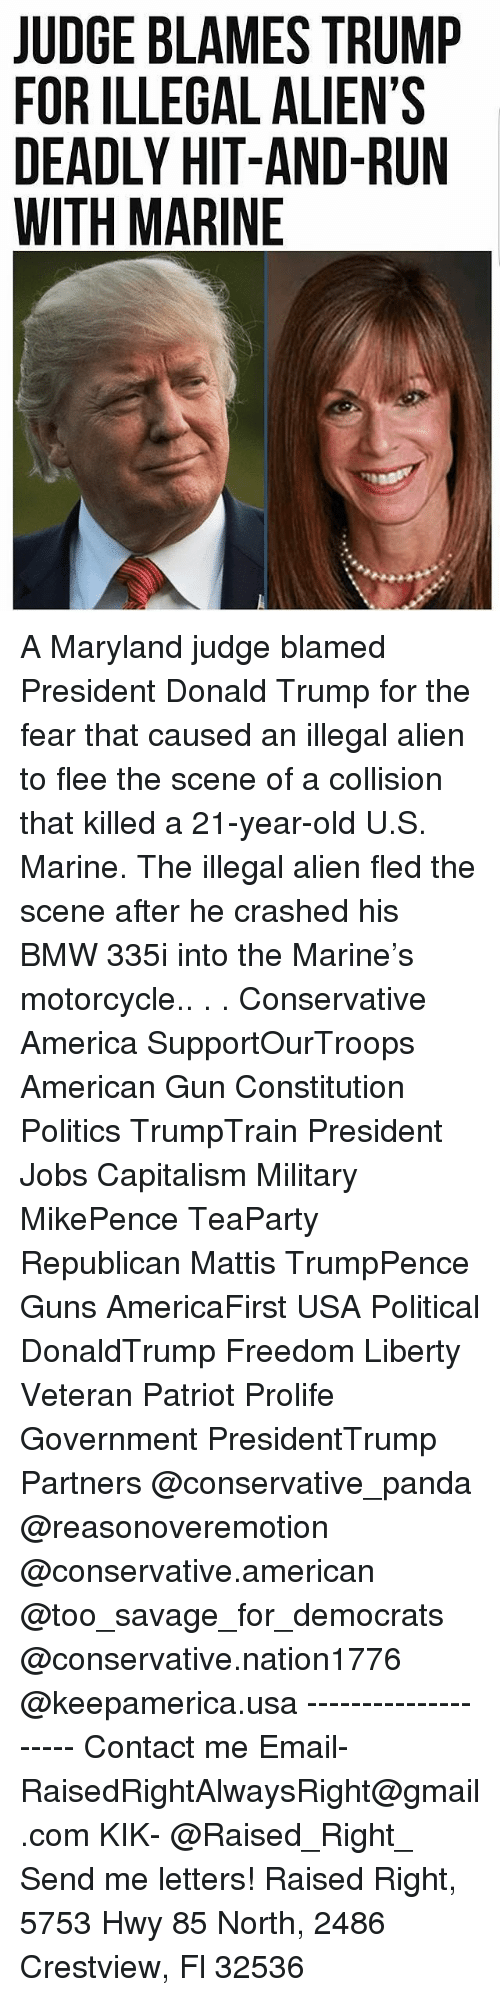 Hitted: JUDGE BLAMES TRUMP  FOR ILLEGAL ALIEN'S  DEADLY HIT-AND-RUN  WITH MARINE A Maryland judge blamed President Donald Trump for the fear that caused an illegal alien to flee the scene of a collision that killed a 21-year-old U.S. Marine. The illegal alien fled the scene after he crashed his BMW 335i into the Marine's motorcycle.. . . Conservative America SupportOurTroops American Gun Constitution Politics TrumpTrain President Jobs Capitalism Military MikePence TeaParty Republican Mattis TrumpPence Guns AmericaFirst USA Political DonaldTrump Freedom Liberty Veteran Patriot Prolife Government PresidentTrump Partners @conservative_panda @reasonoveremotion @conservative.american @too_savage_for_democrats @conservative.nation1776 @keepamerica.usa -------------------- Contact me ●Email- RaisedRightAlwaysRight@gmail.com ●KIK- @Raised_Right_ ●Send me letters! Raised Right, 5753 Hwy 85 North, 2486 Crestview, Fl 32536